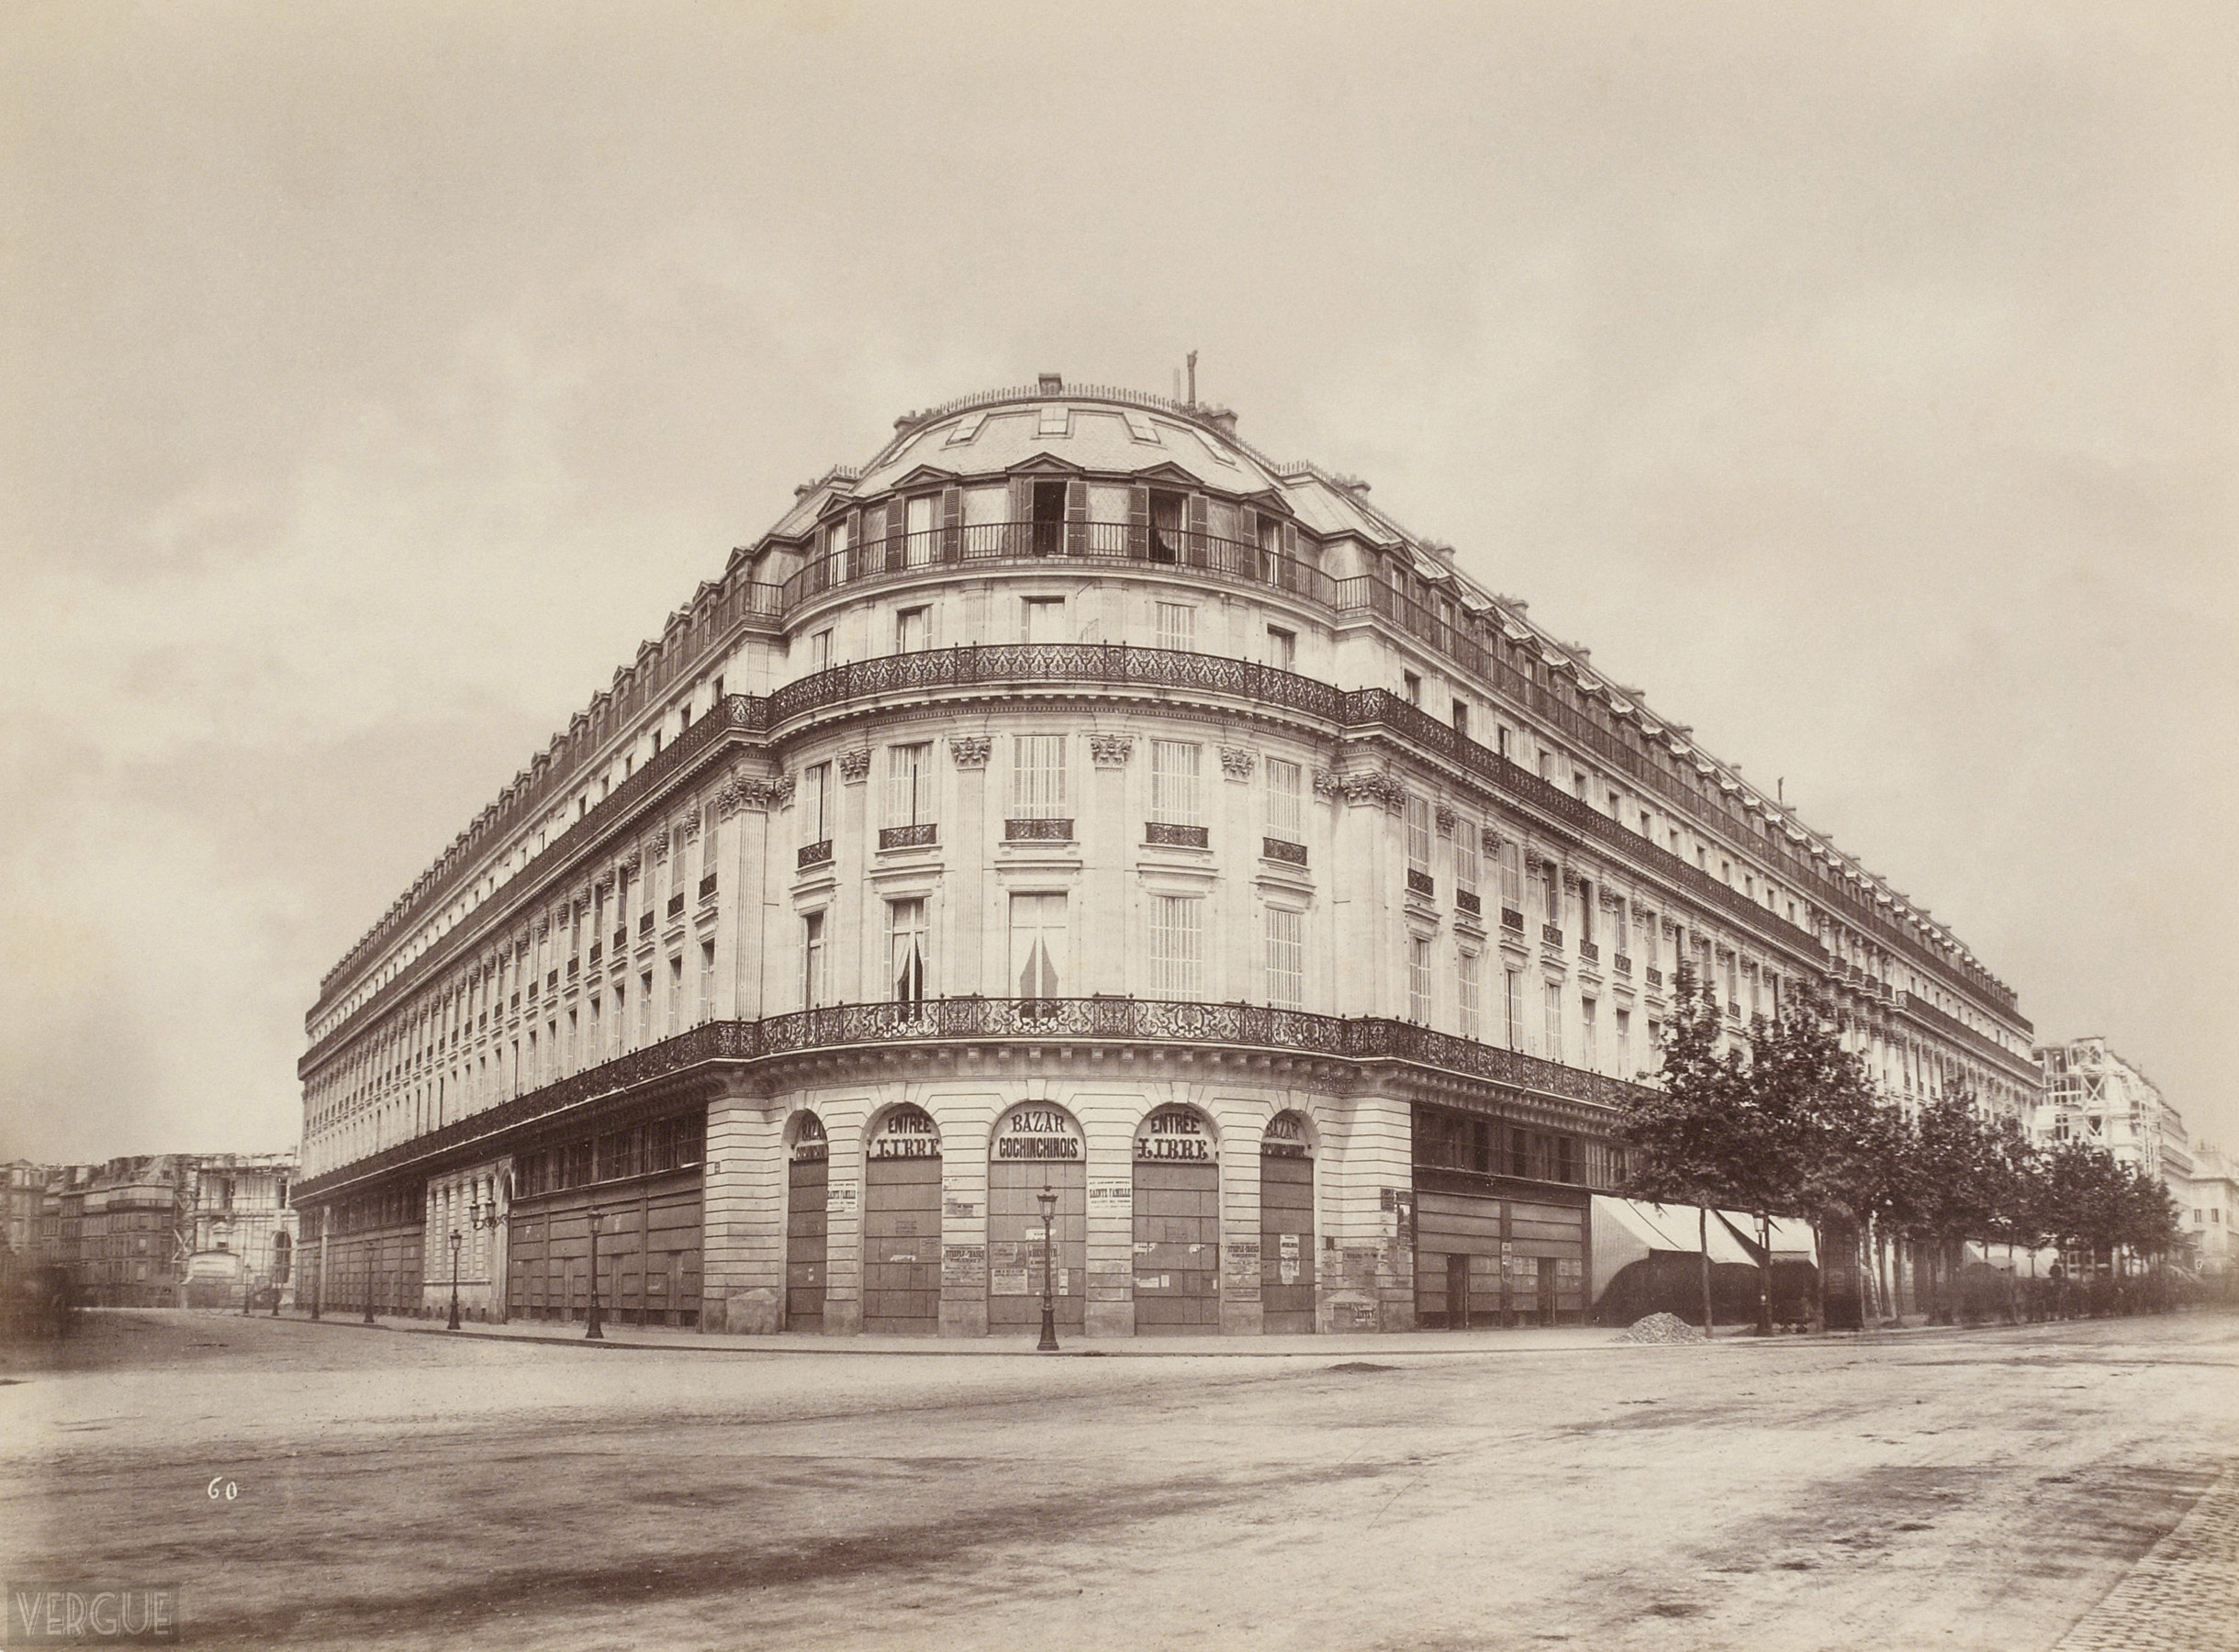 Le grand h tel c 1864 vergue for Le grand hotel